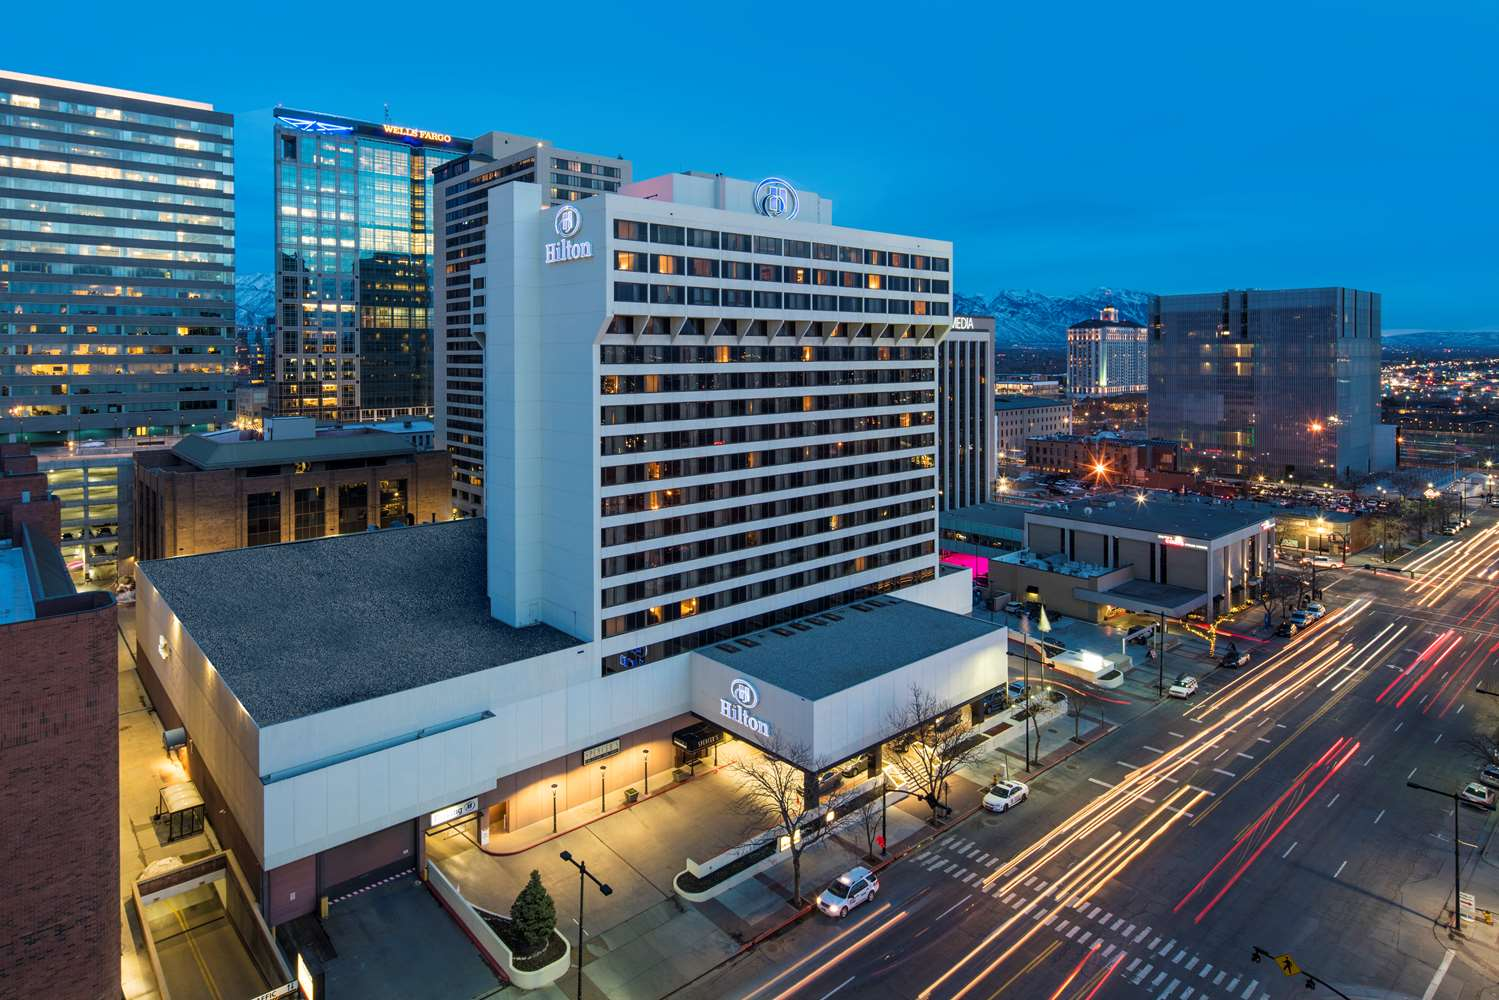 Hilton Hotel Downtown Salt Lake City